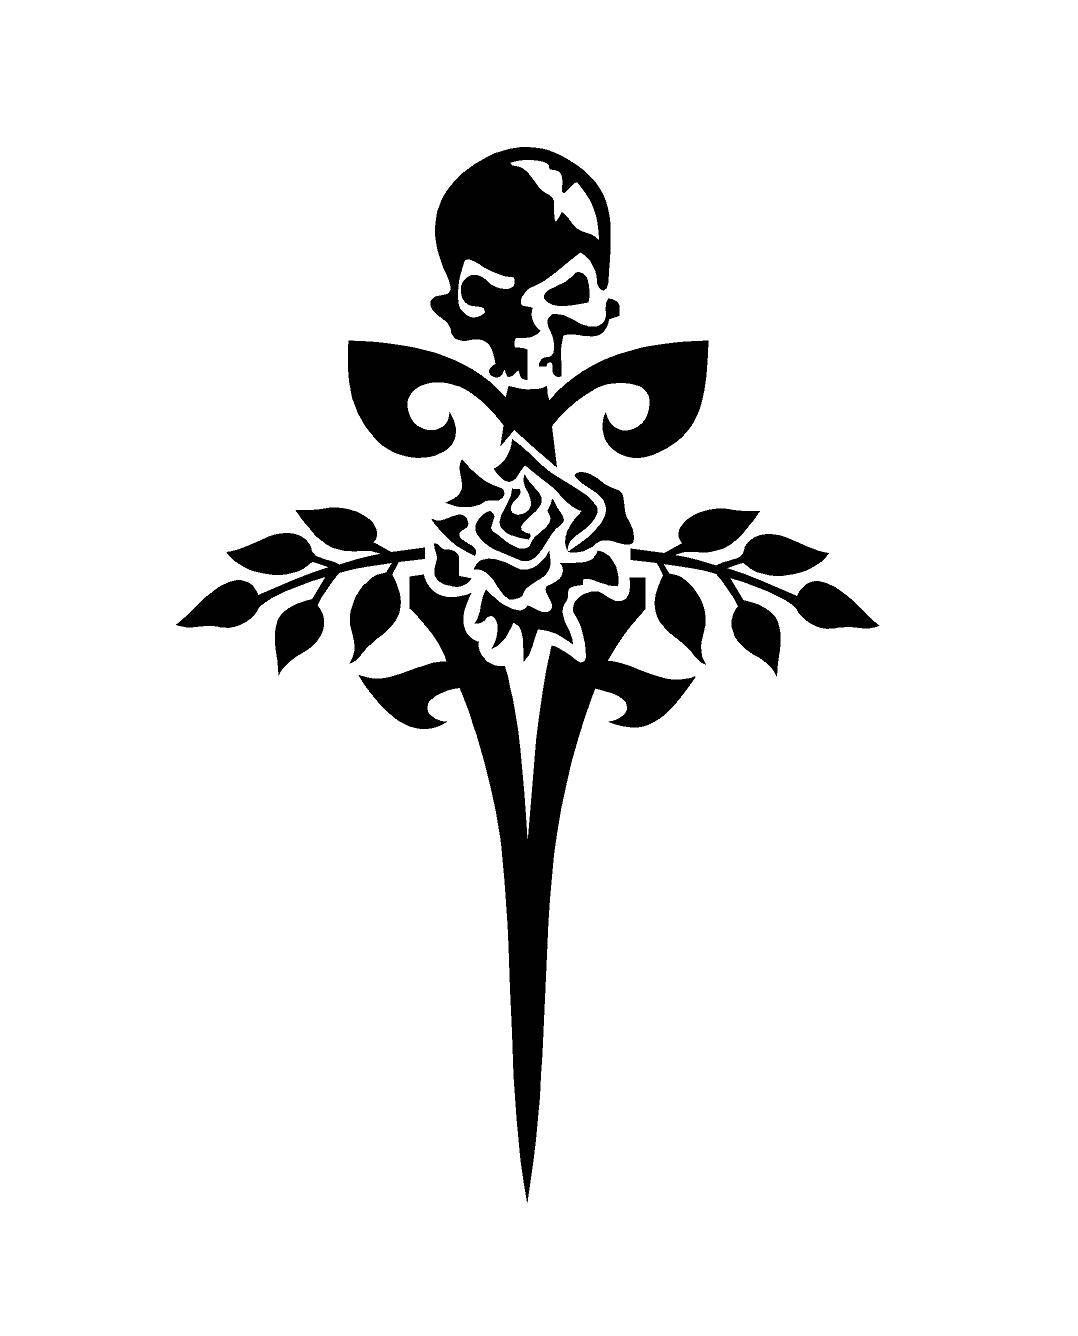 Excited to share this item from my etsy shop gothic rose skull floral sword decal gothic decal custom vinyl computer laptop car auto vehicle window decal